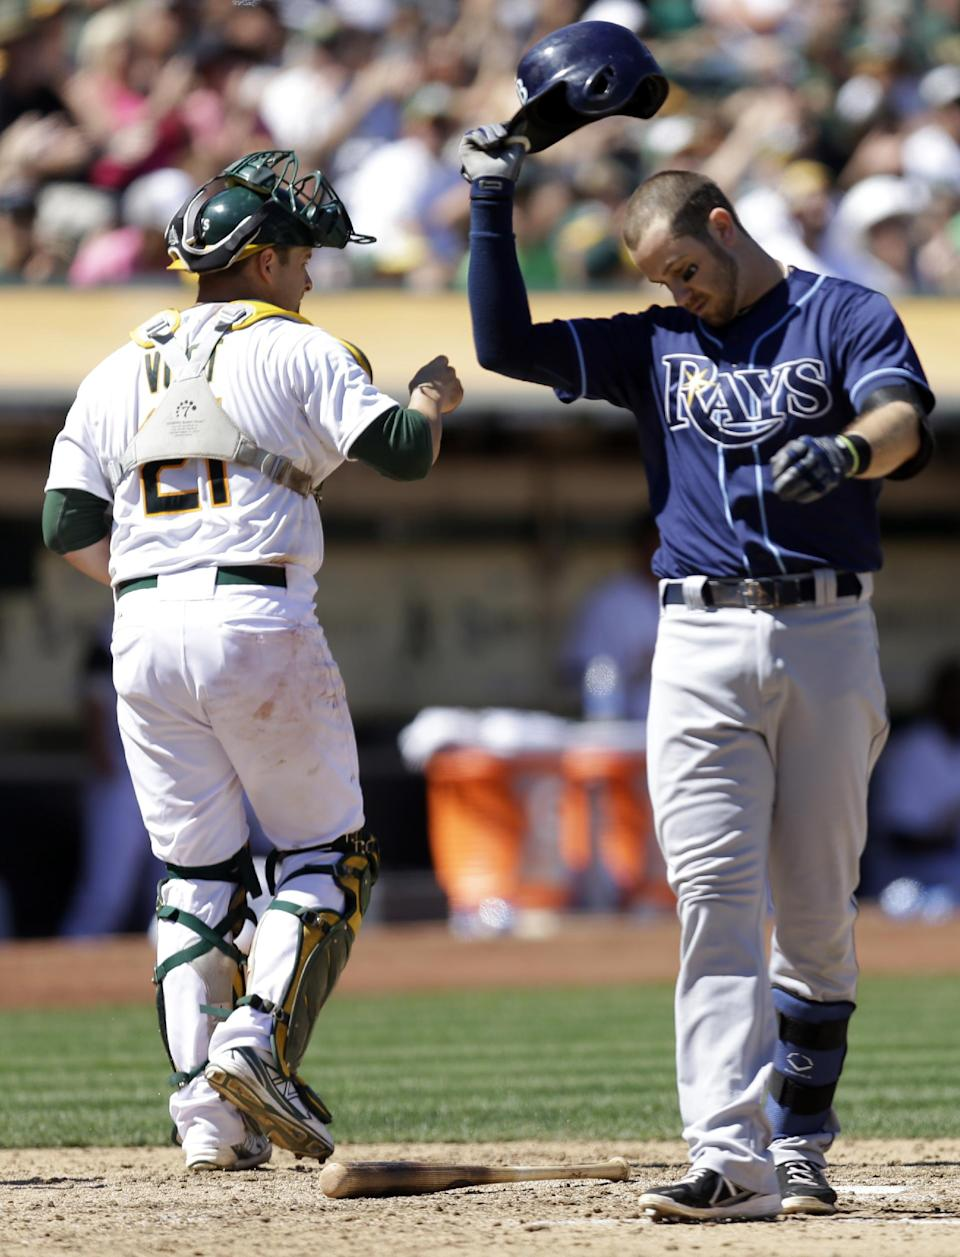 Crisp, Vogt hit homers as Griffin, A's beat Rays